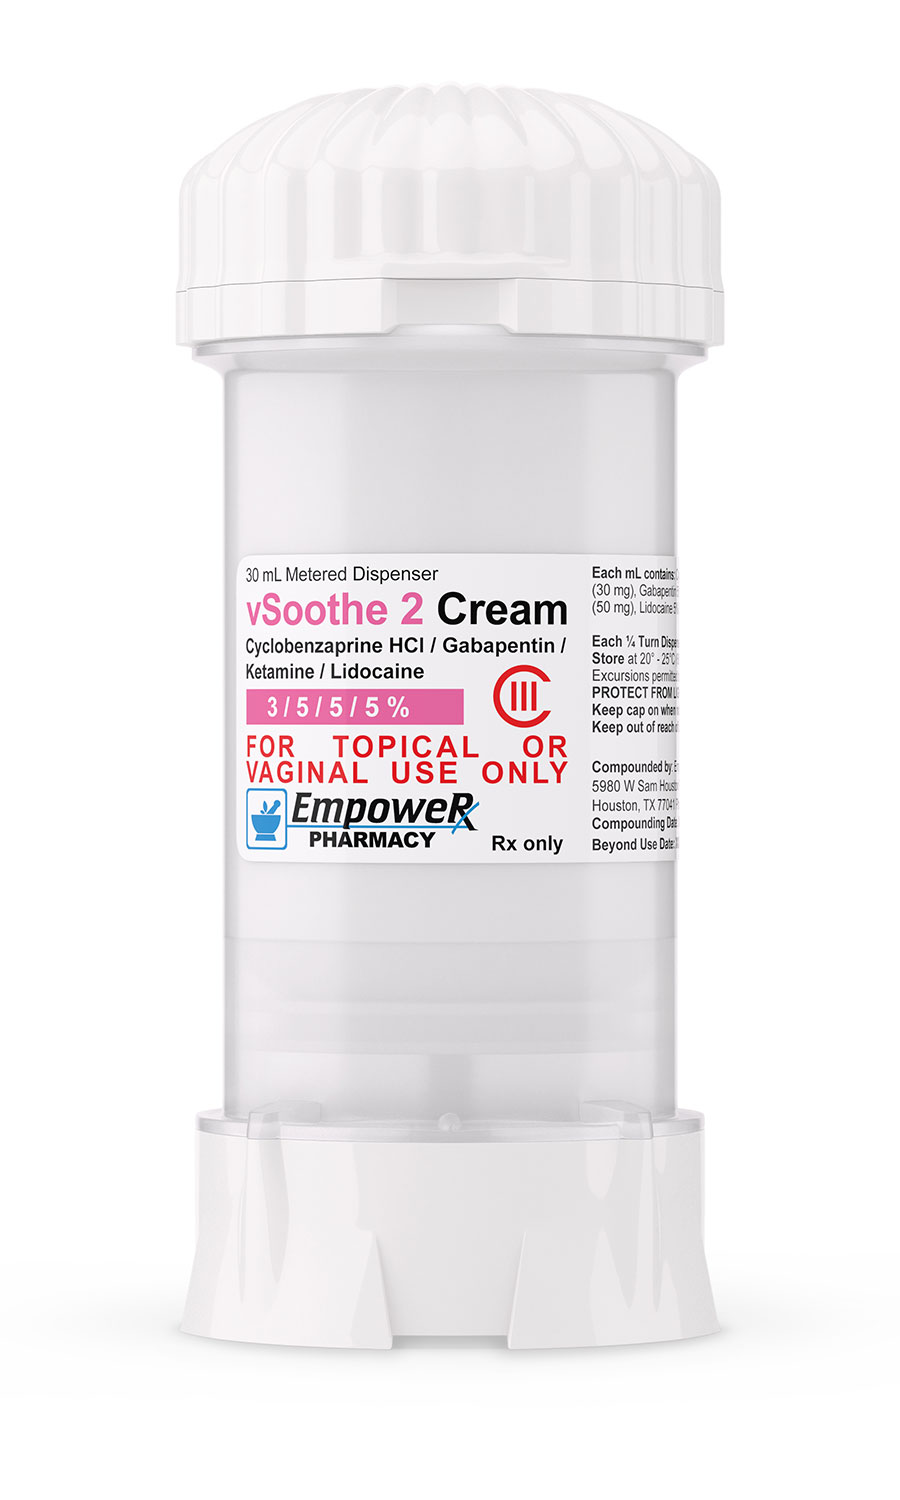 vSoothe 2 Cream